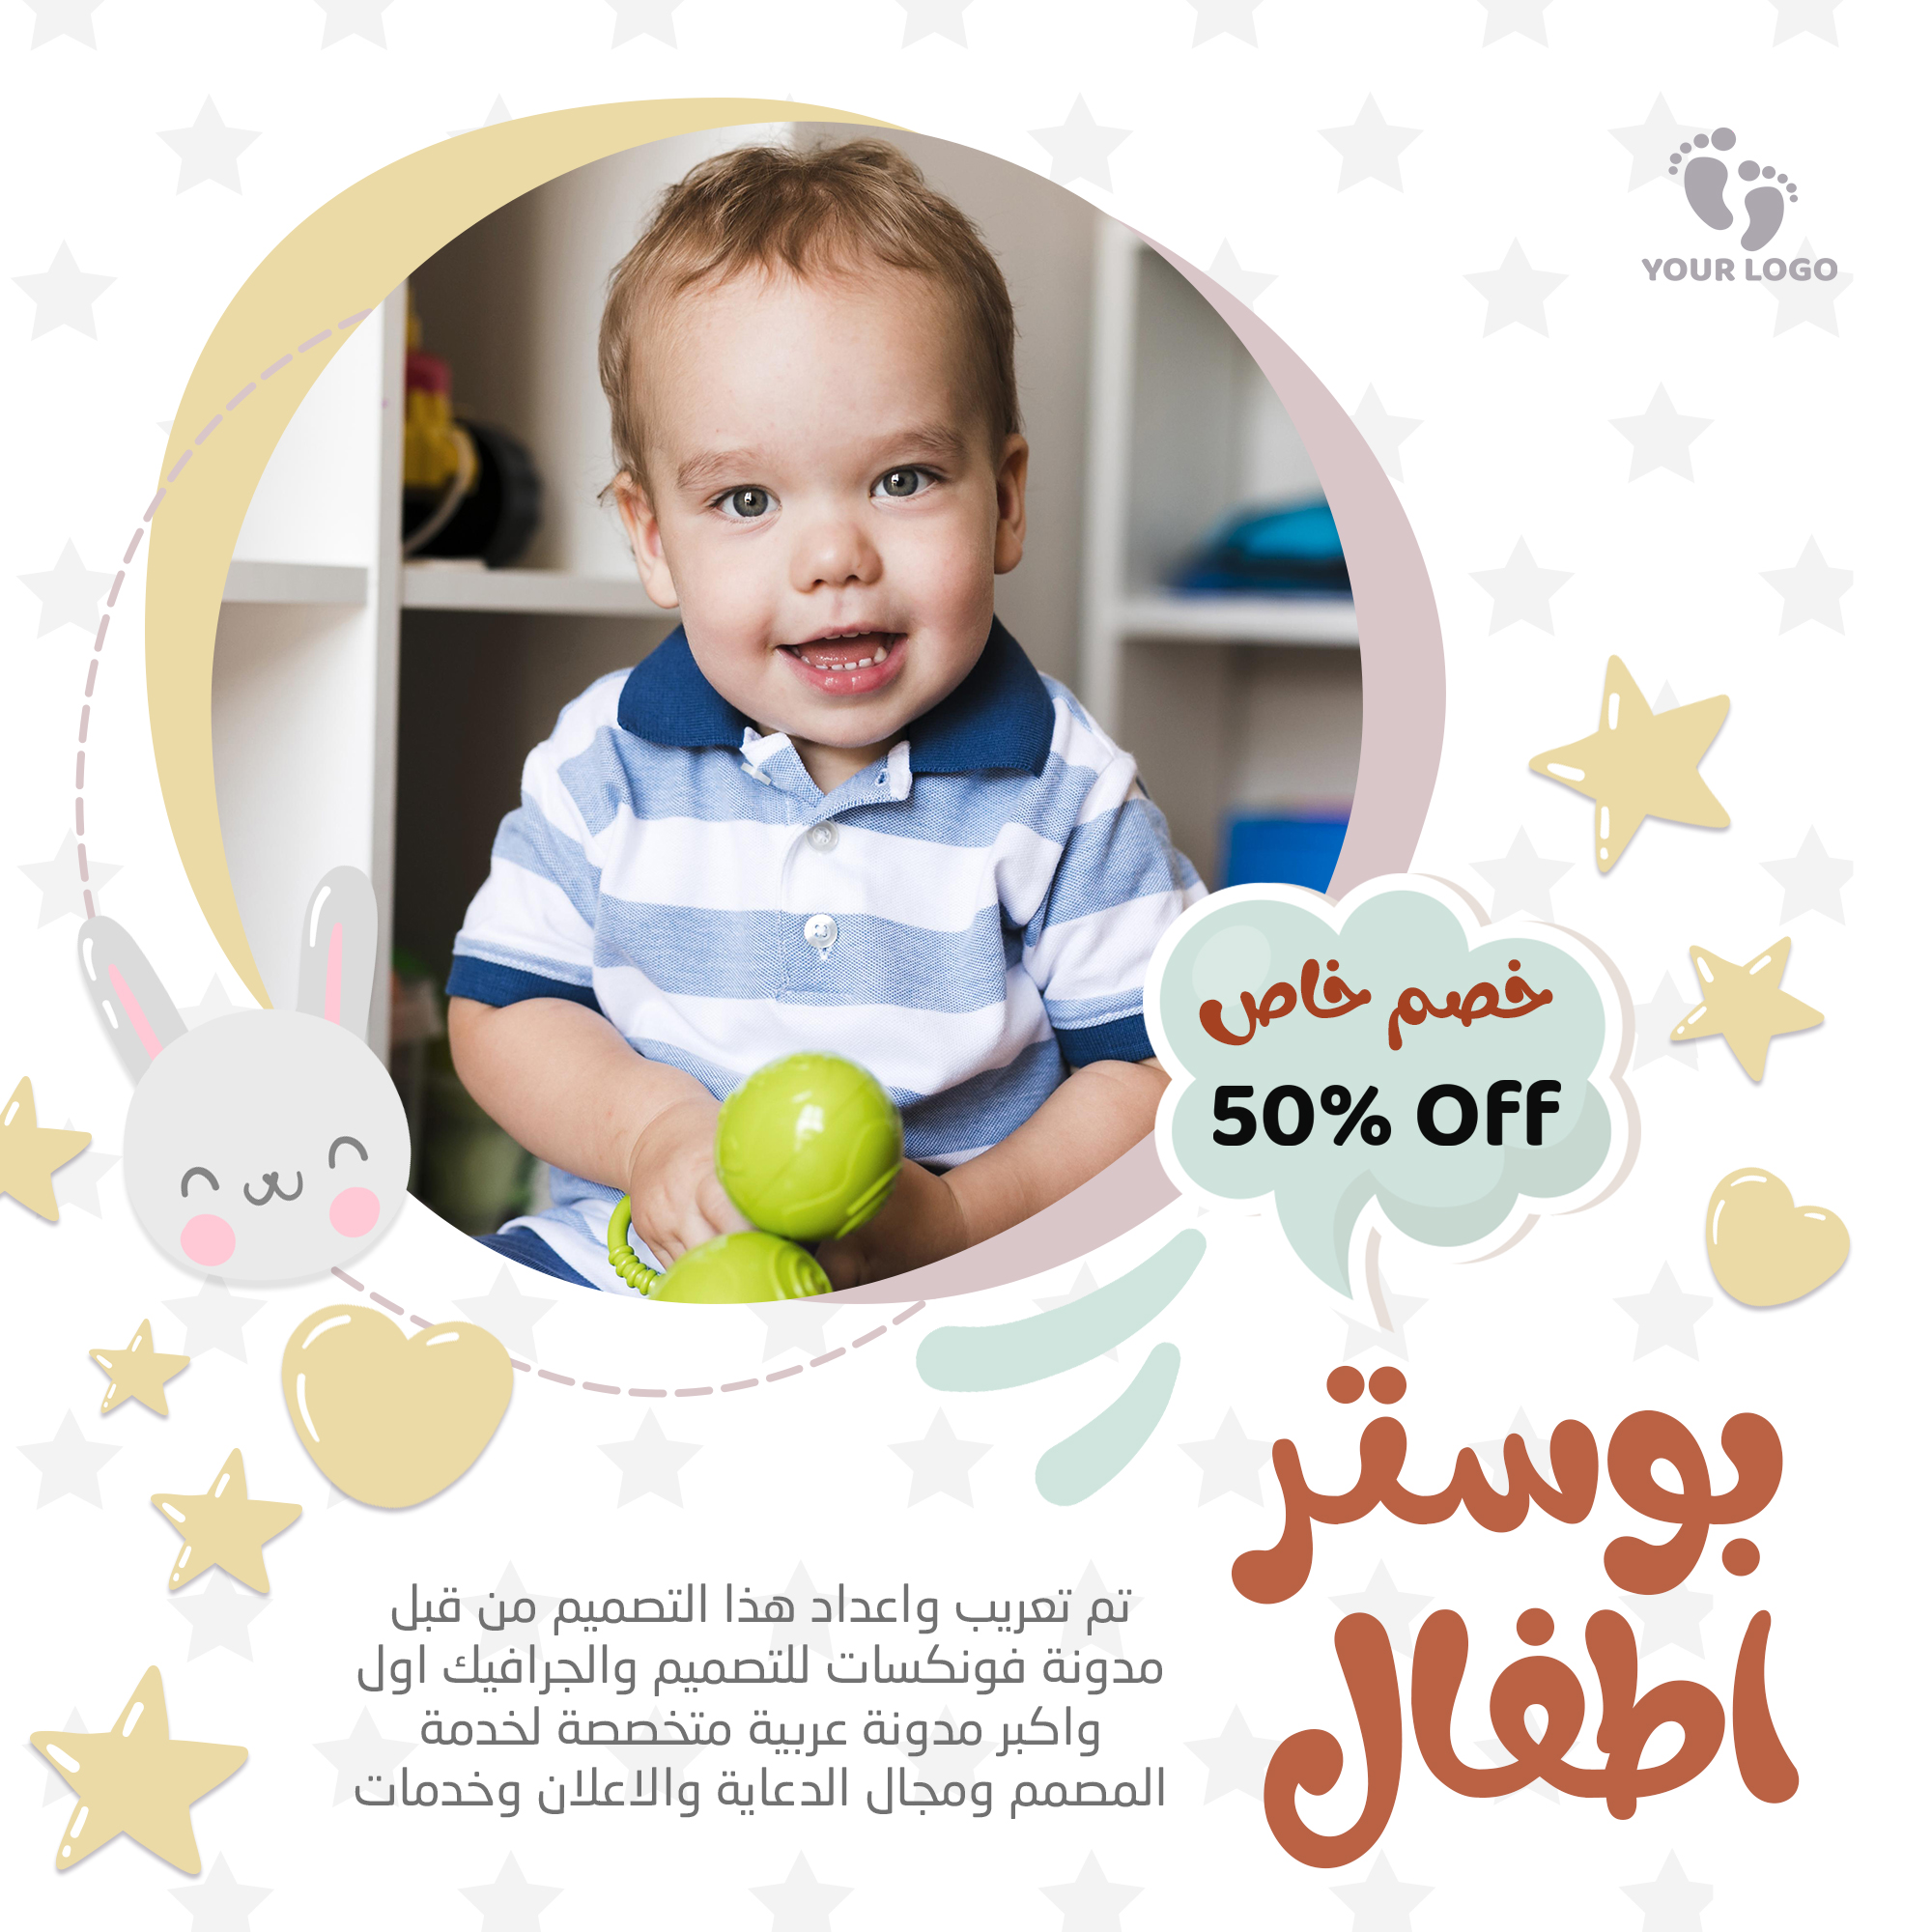 Download social media designs for children and sell baby products PSD